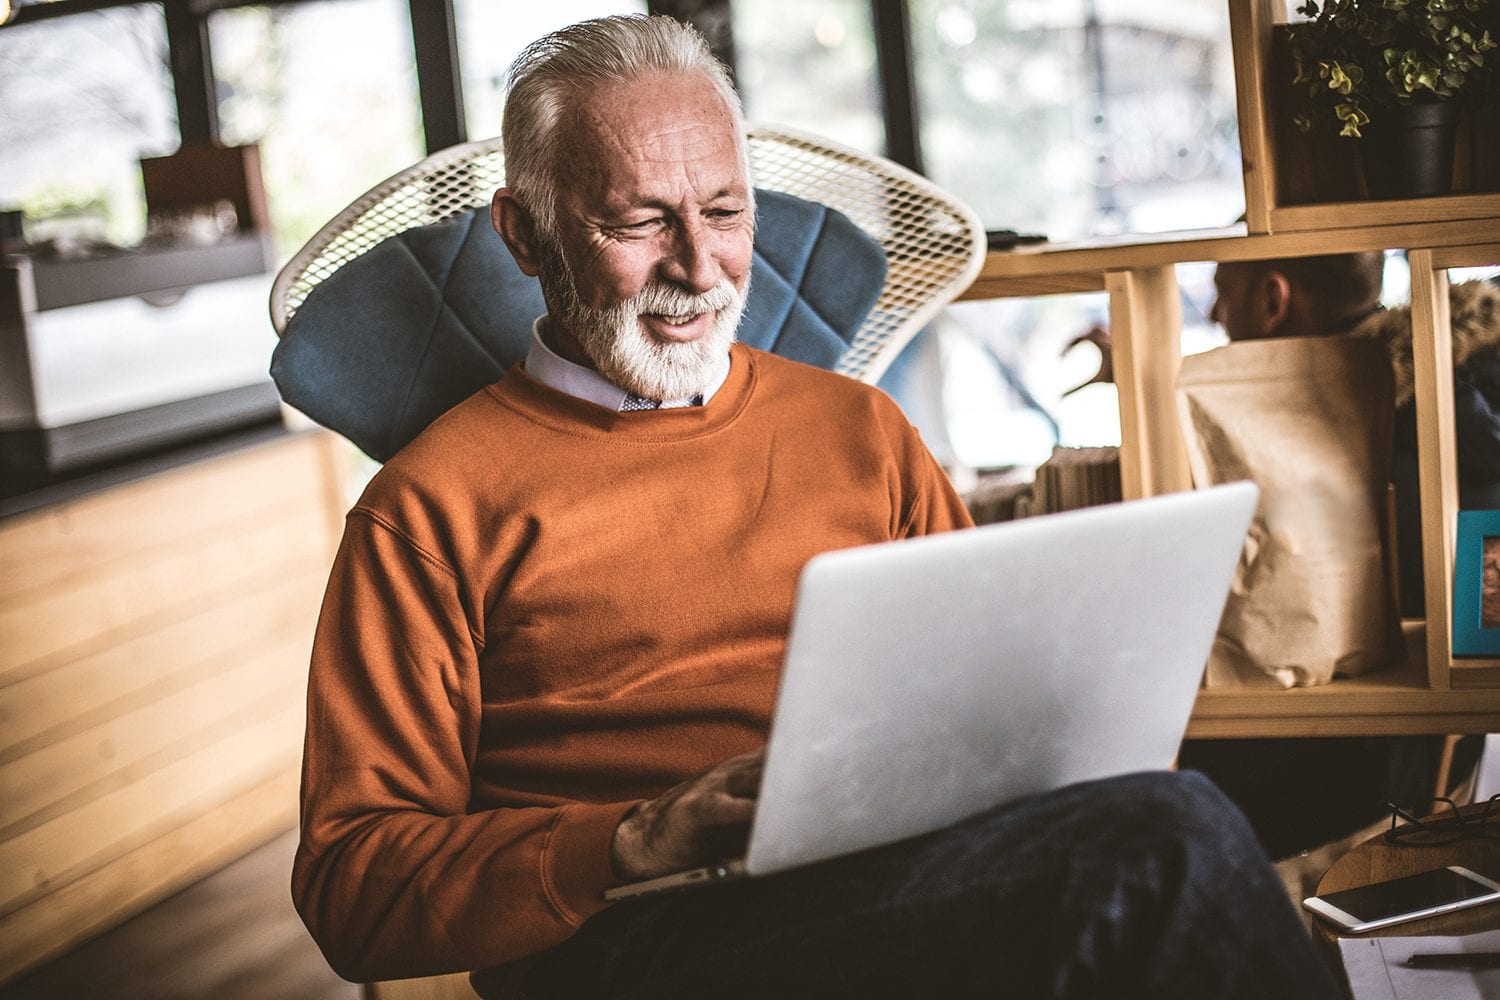 Elder man on computer researching retirement